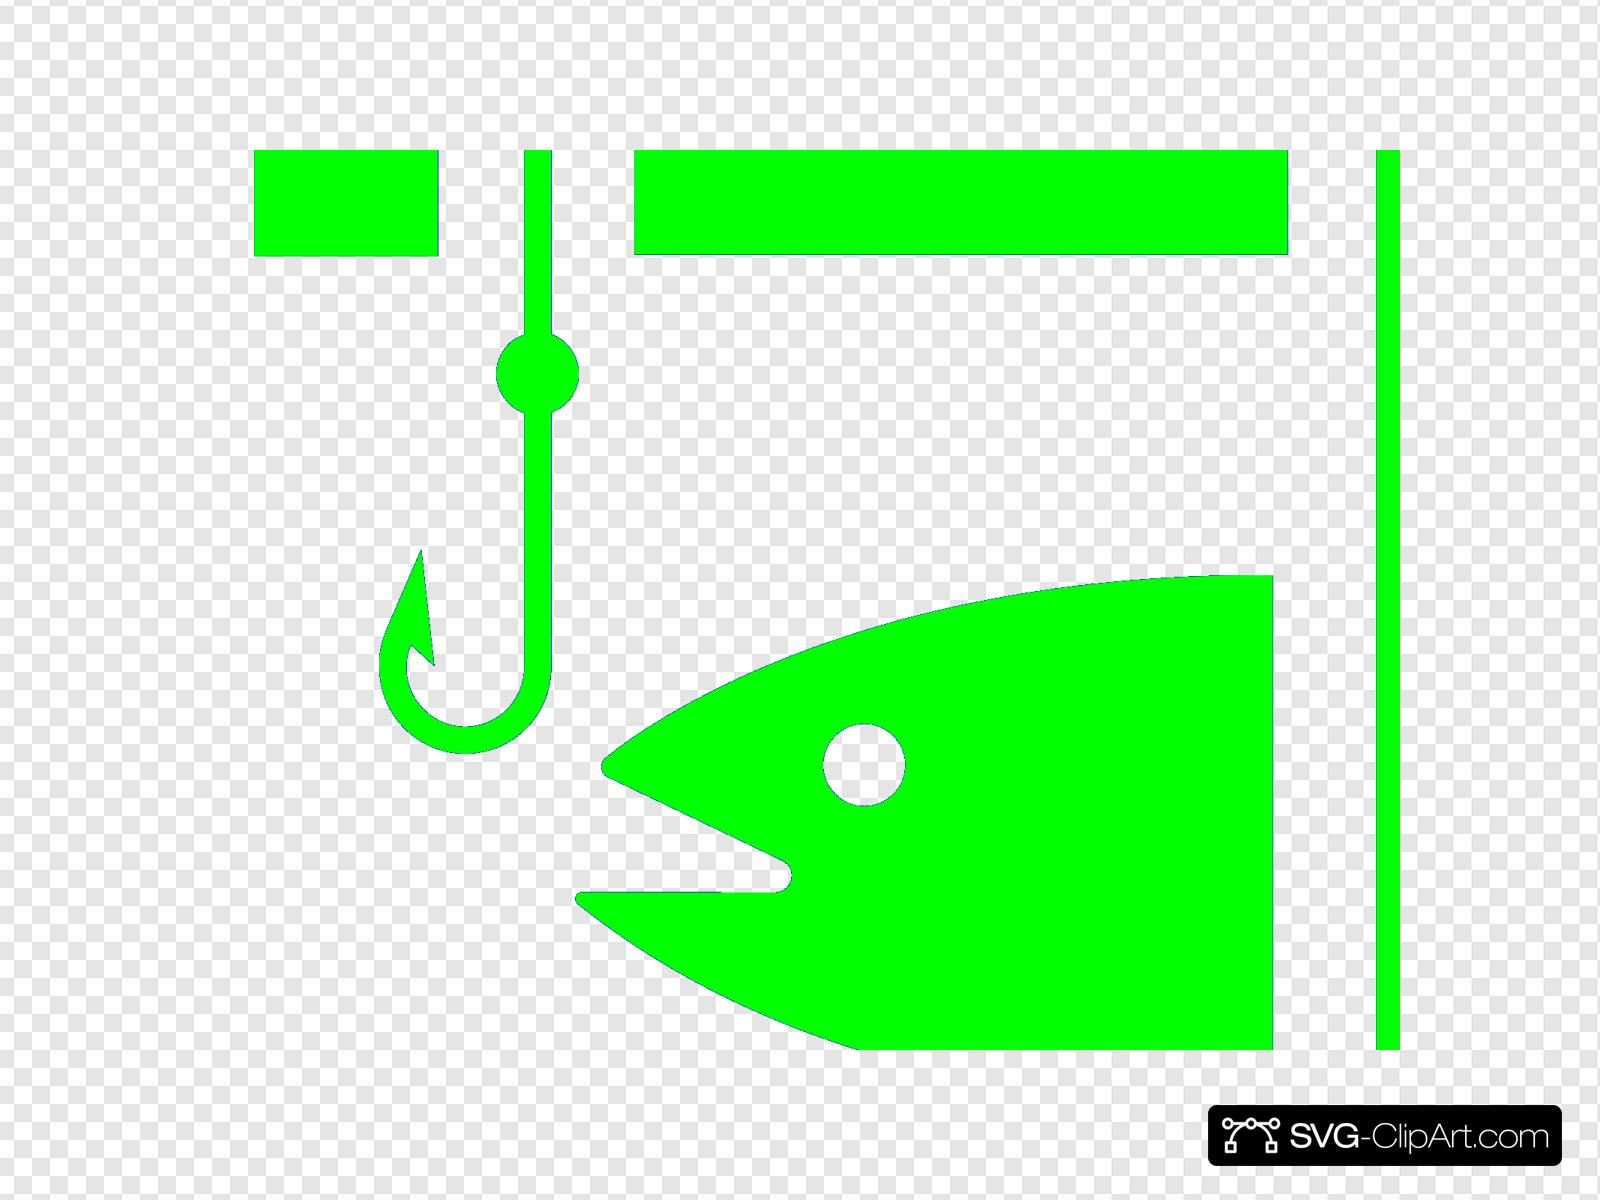 Download Ice Fishing Blue With Green Fish Svg Vector Ice Fishing Blue With Green Fish Clip Art Svg Clipart